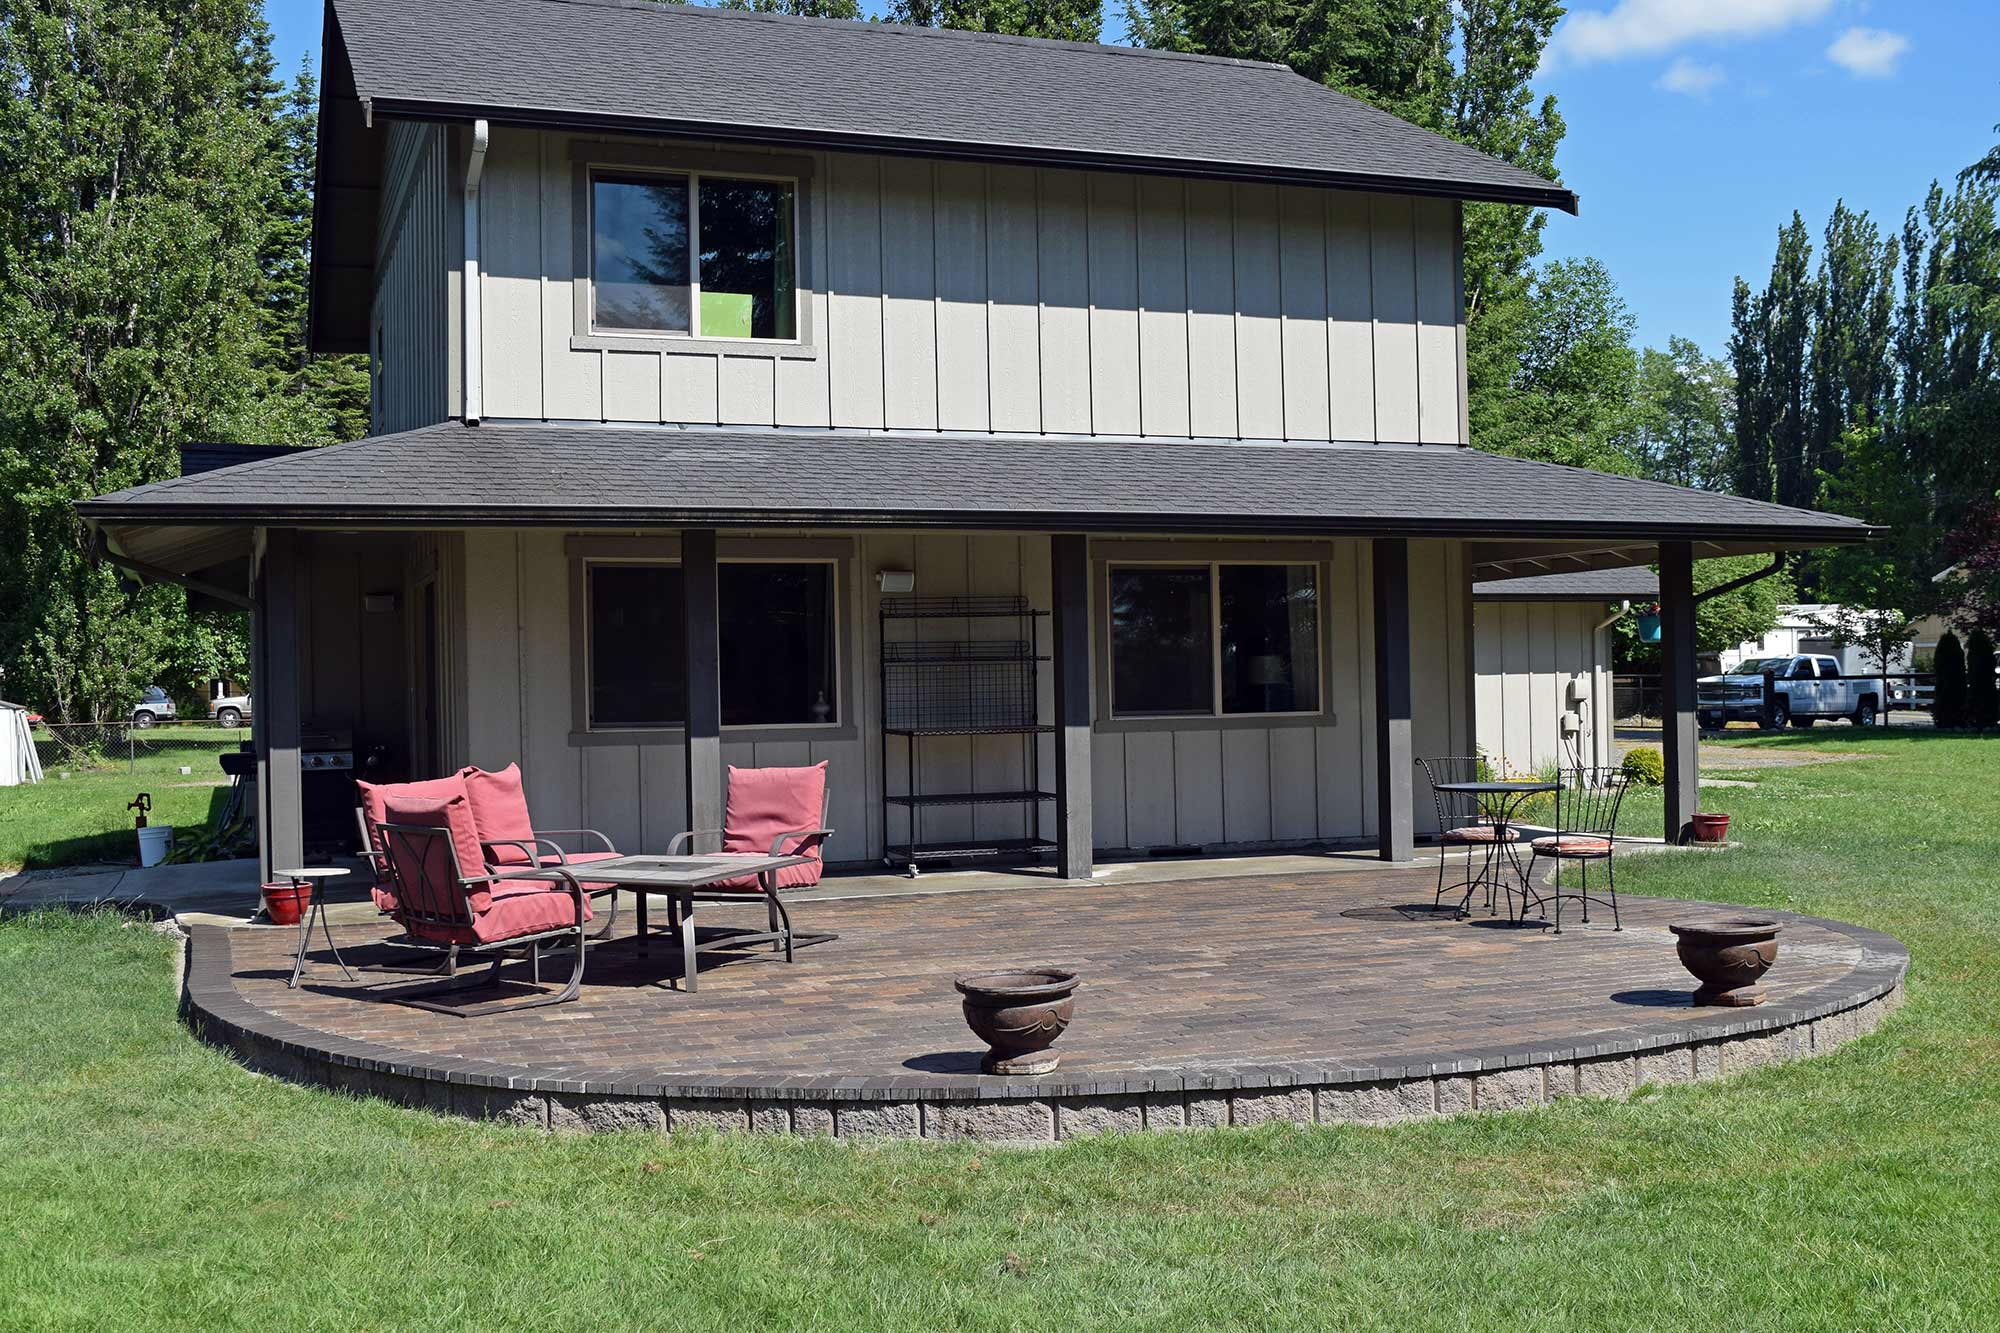 Finished Raised Paver Patio Finished Raised Paver Patio ...